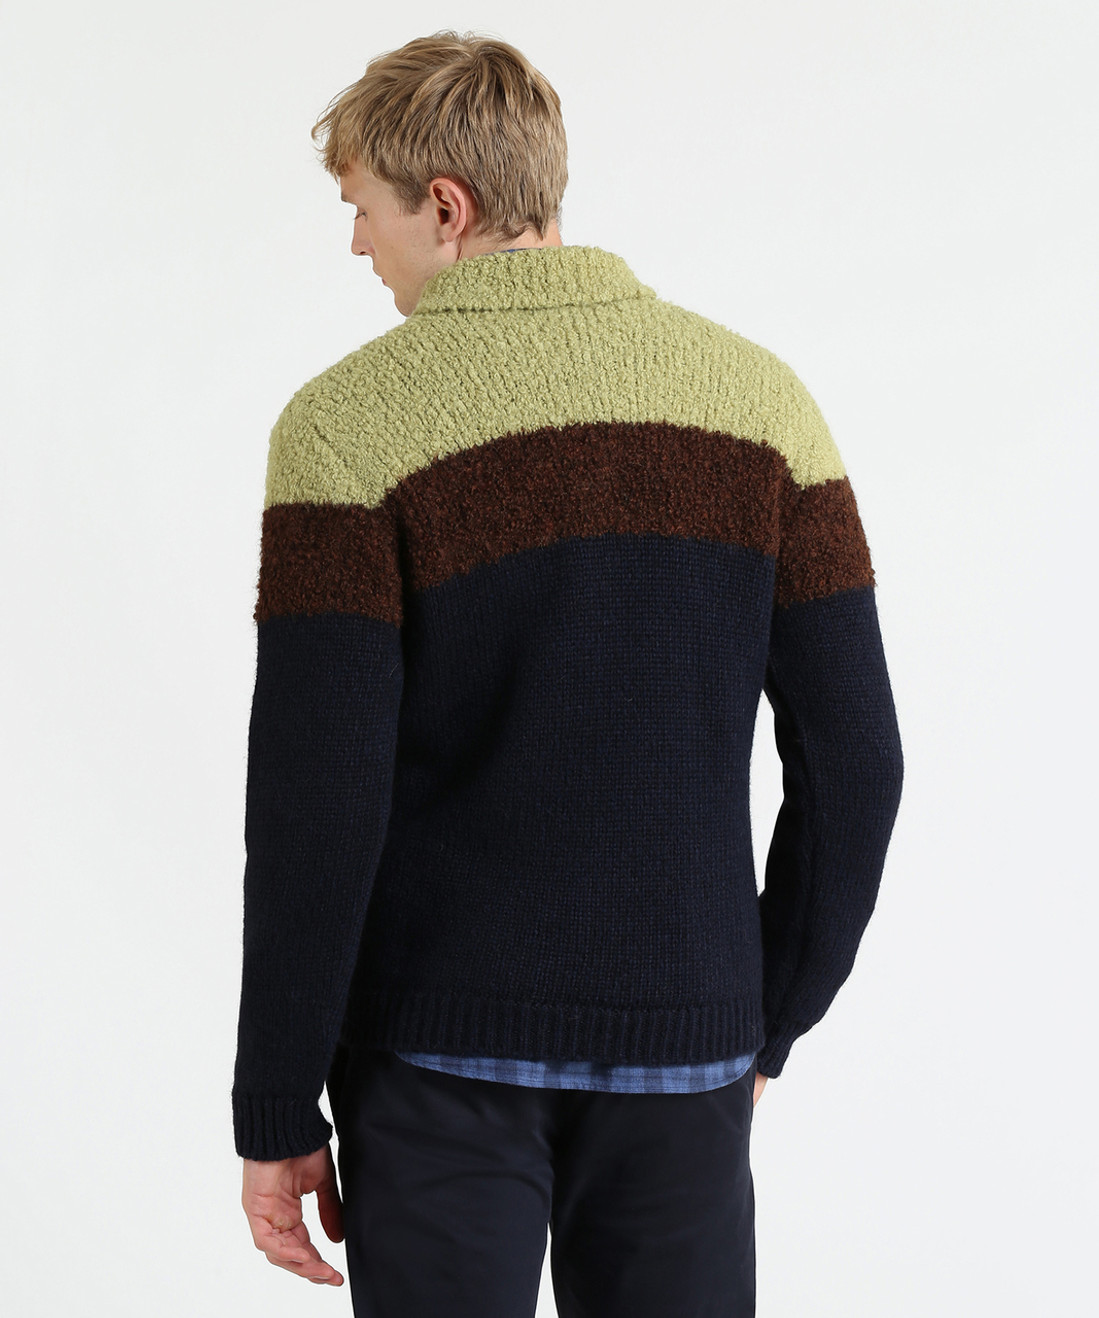 Men's Boucle' Wool Alpaca Sweater - Iconic Pack